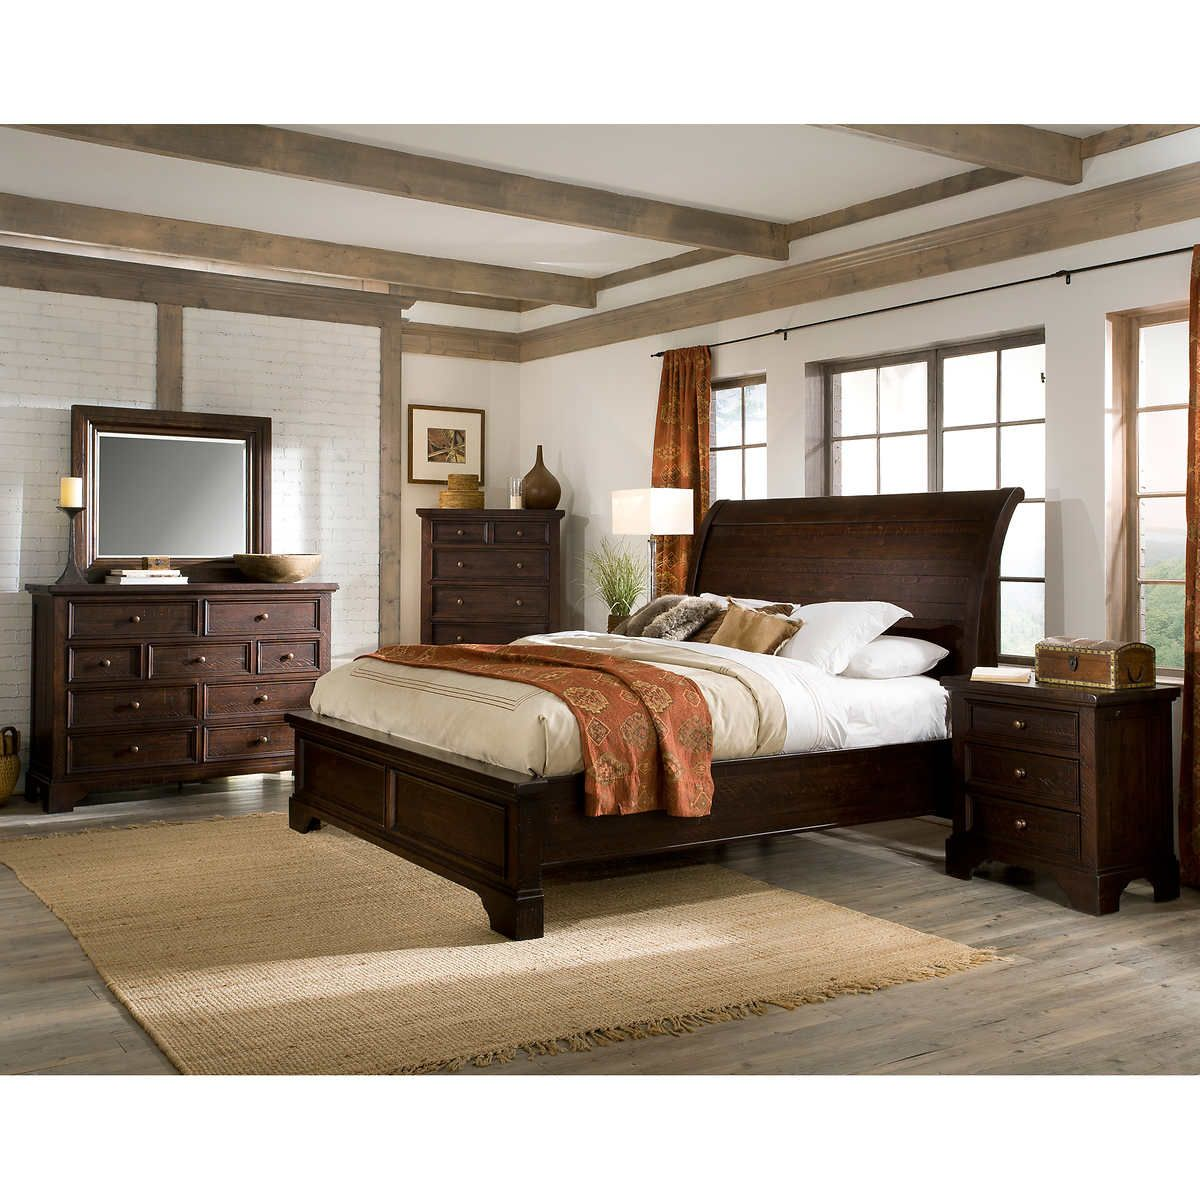 costco bedroom furniture sale interior design bedroom ideas on a